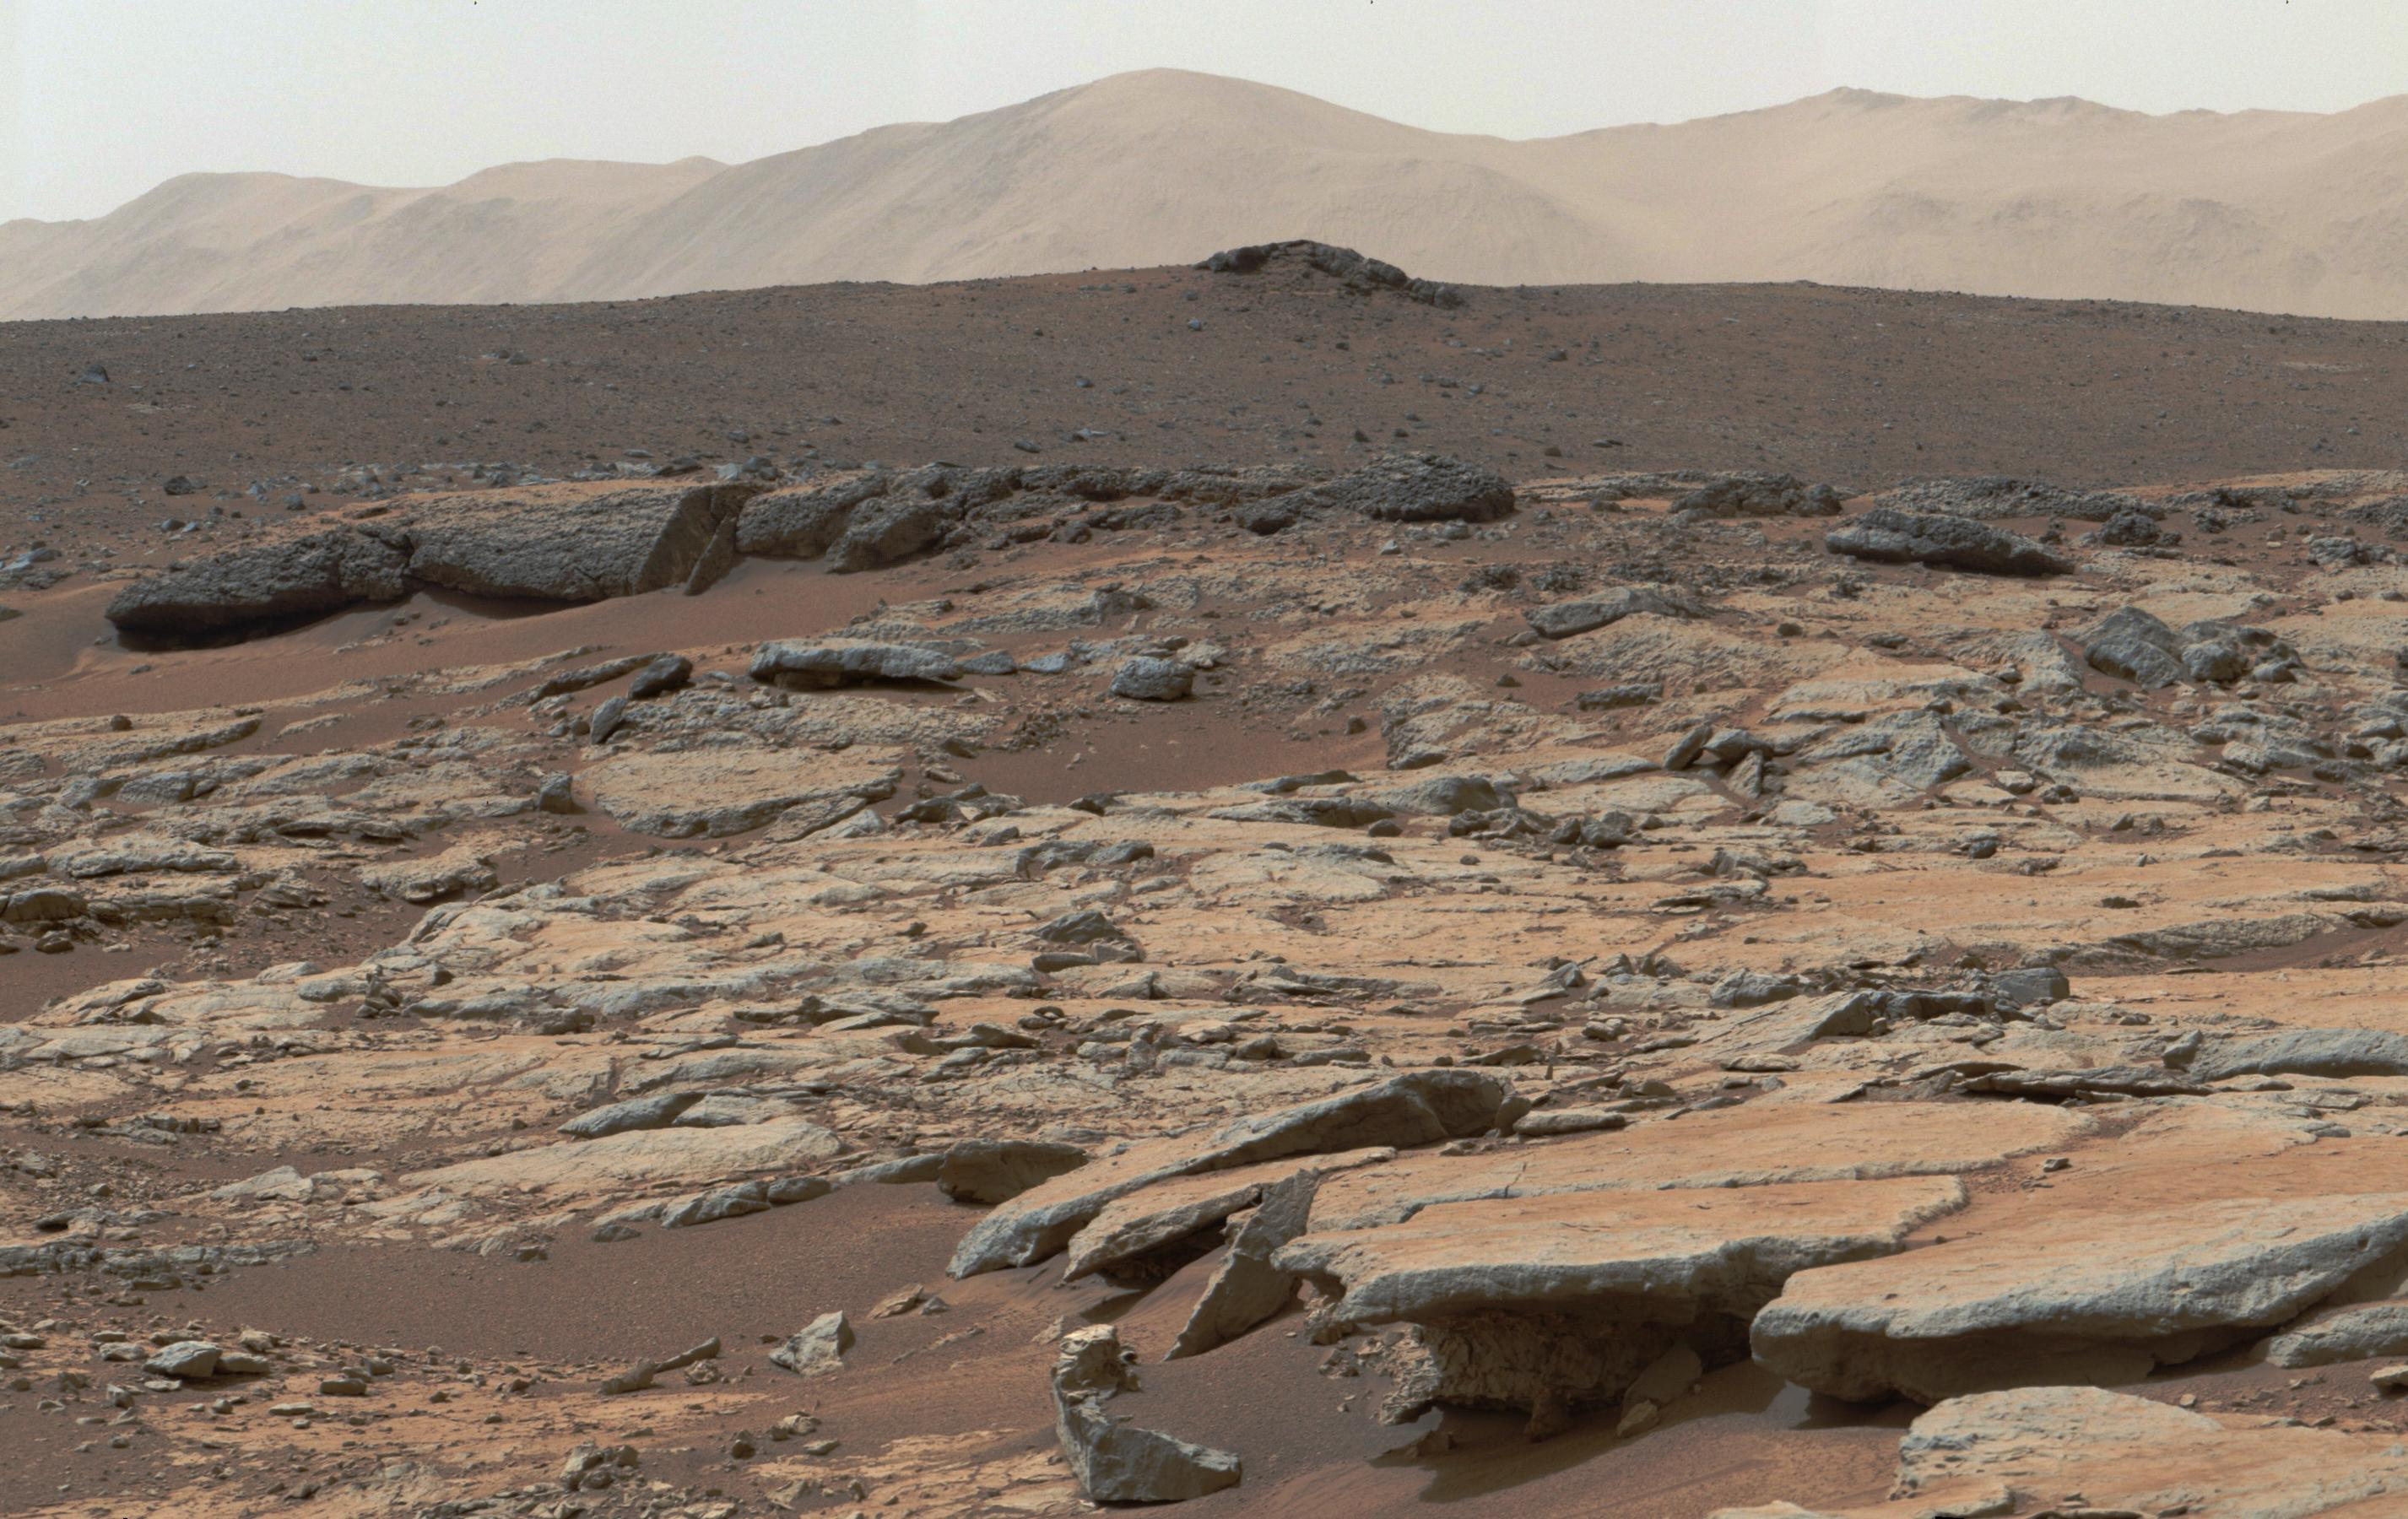 Space Images | Erosion by Scarp Retreat in Gale Crater